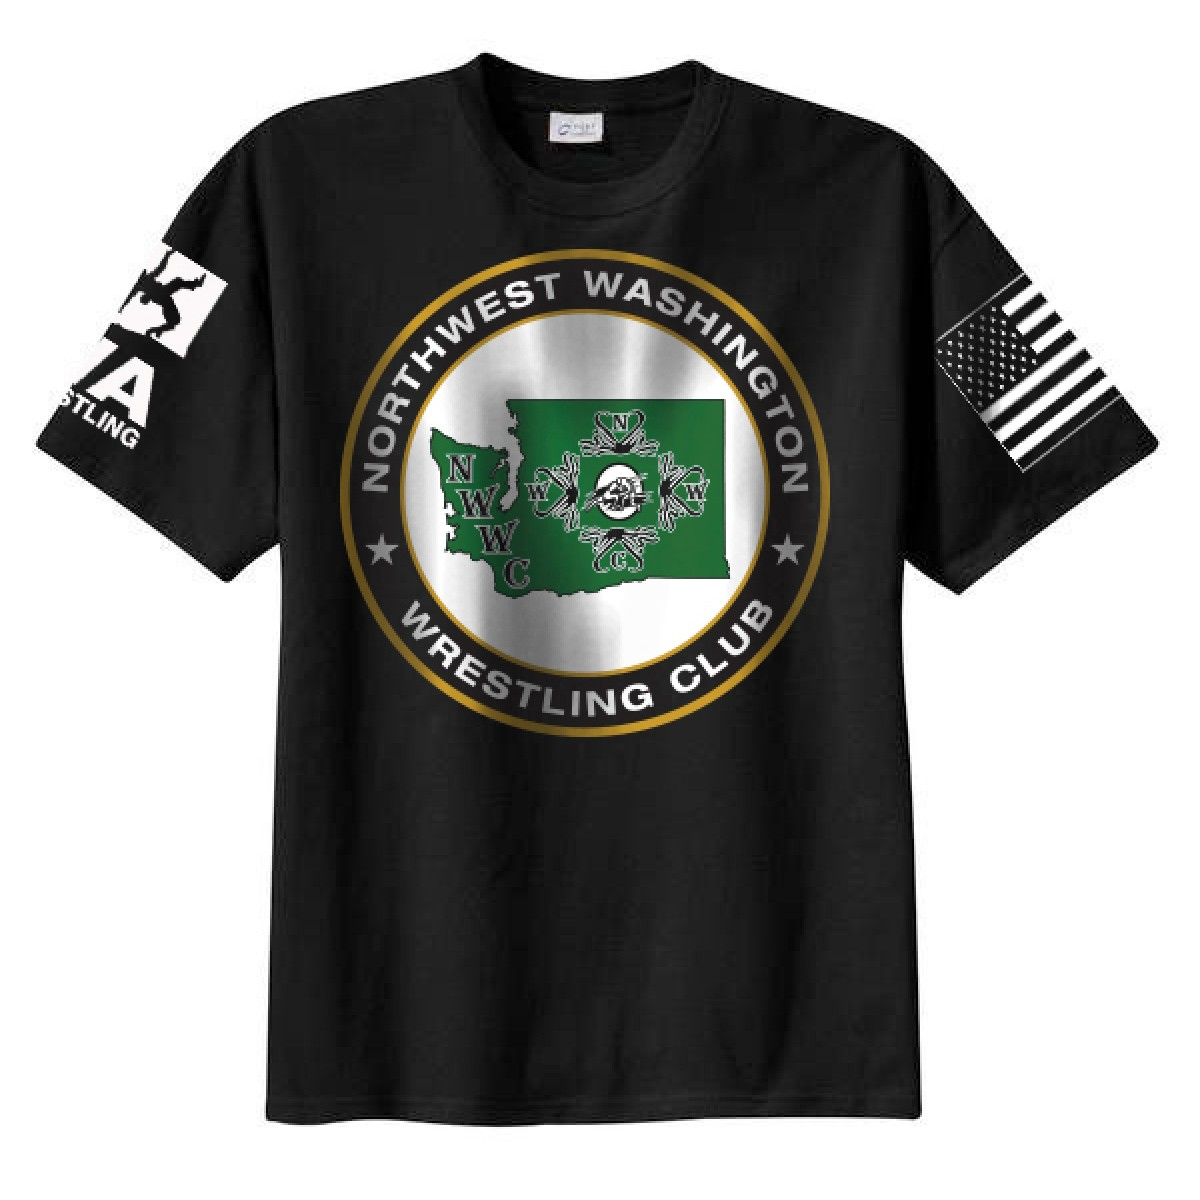 NWWC Black T-Shirt With Green Logo-Black-M